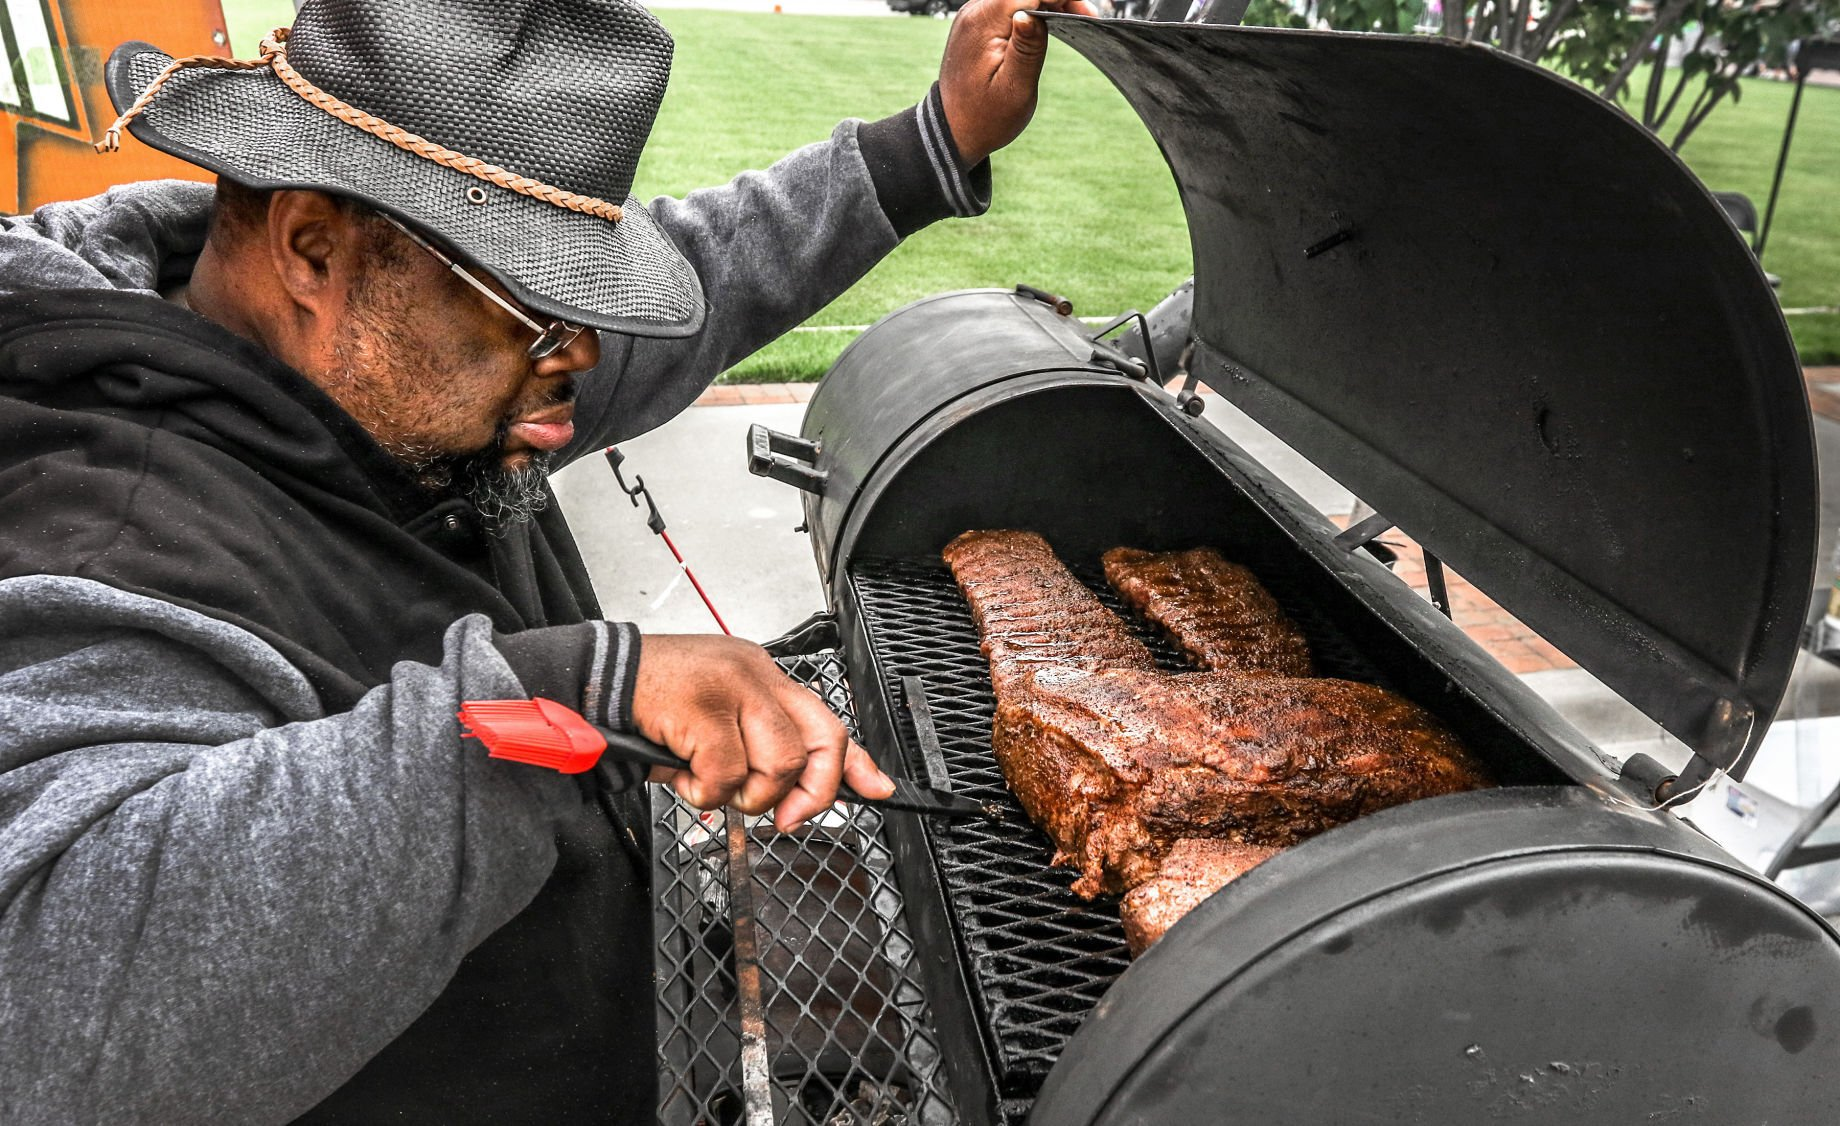 Barbecue Festival returns with block party